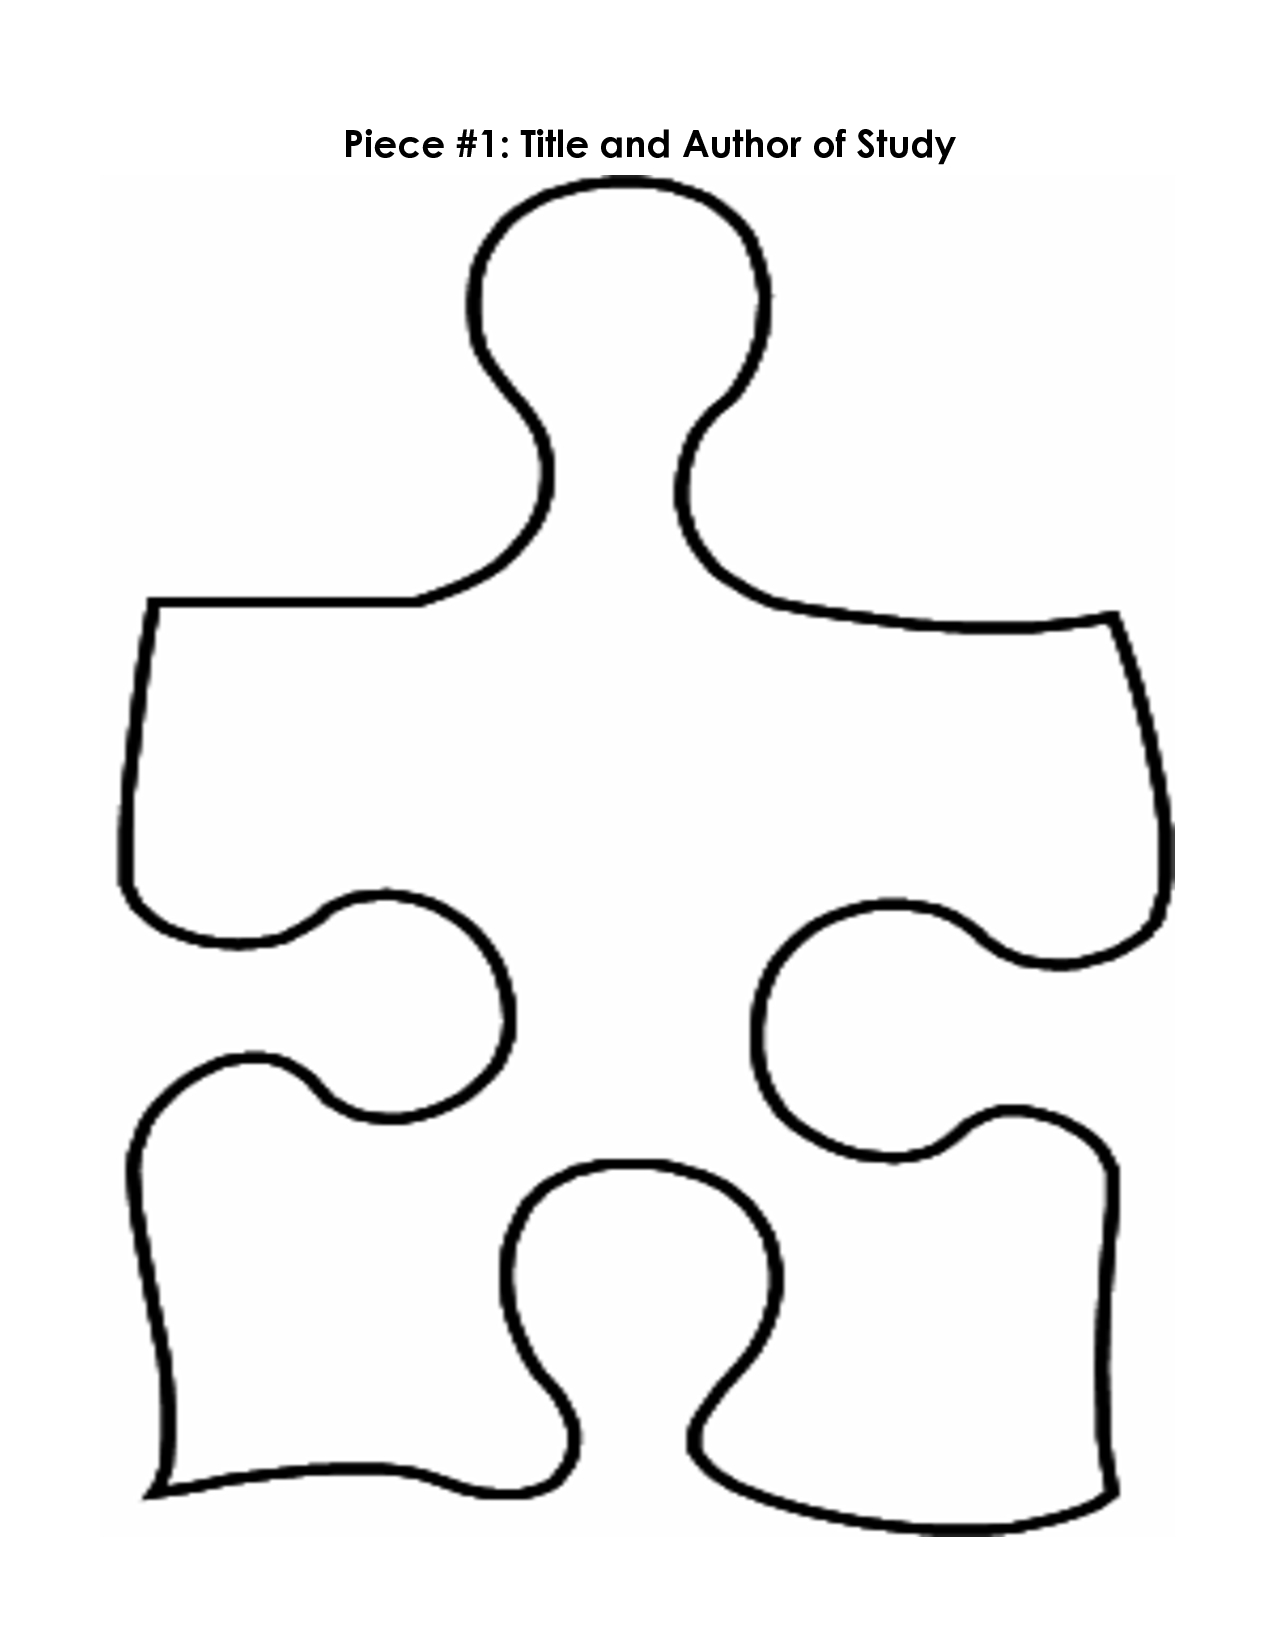 Free Puzzle Piece Template, Download Free Clip Art, Free Clip Art On - 8 Piece Puzzle Printable